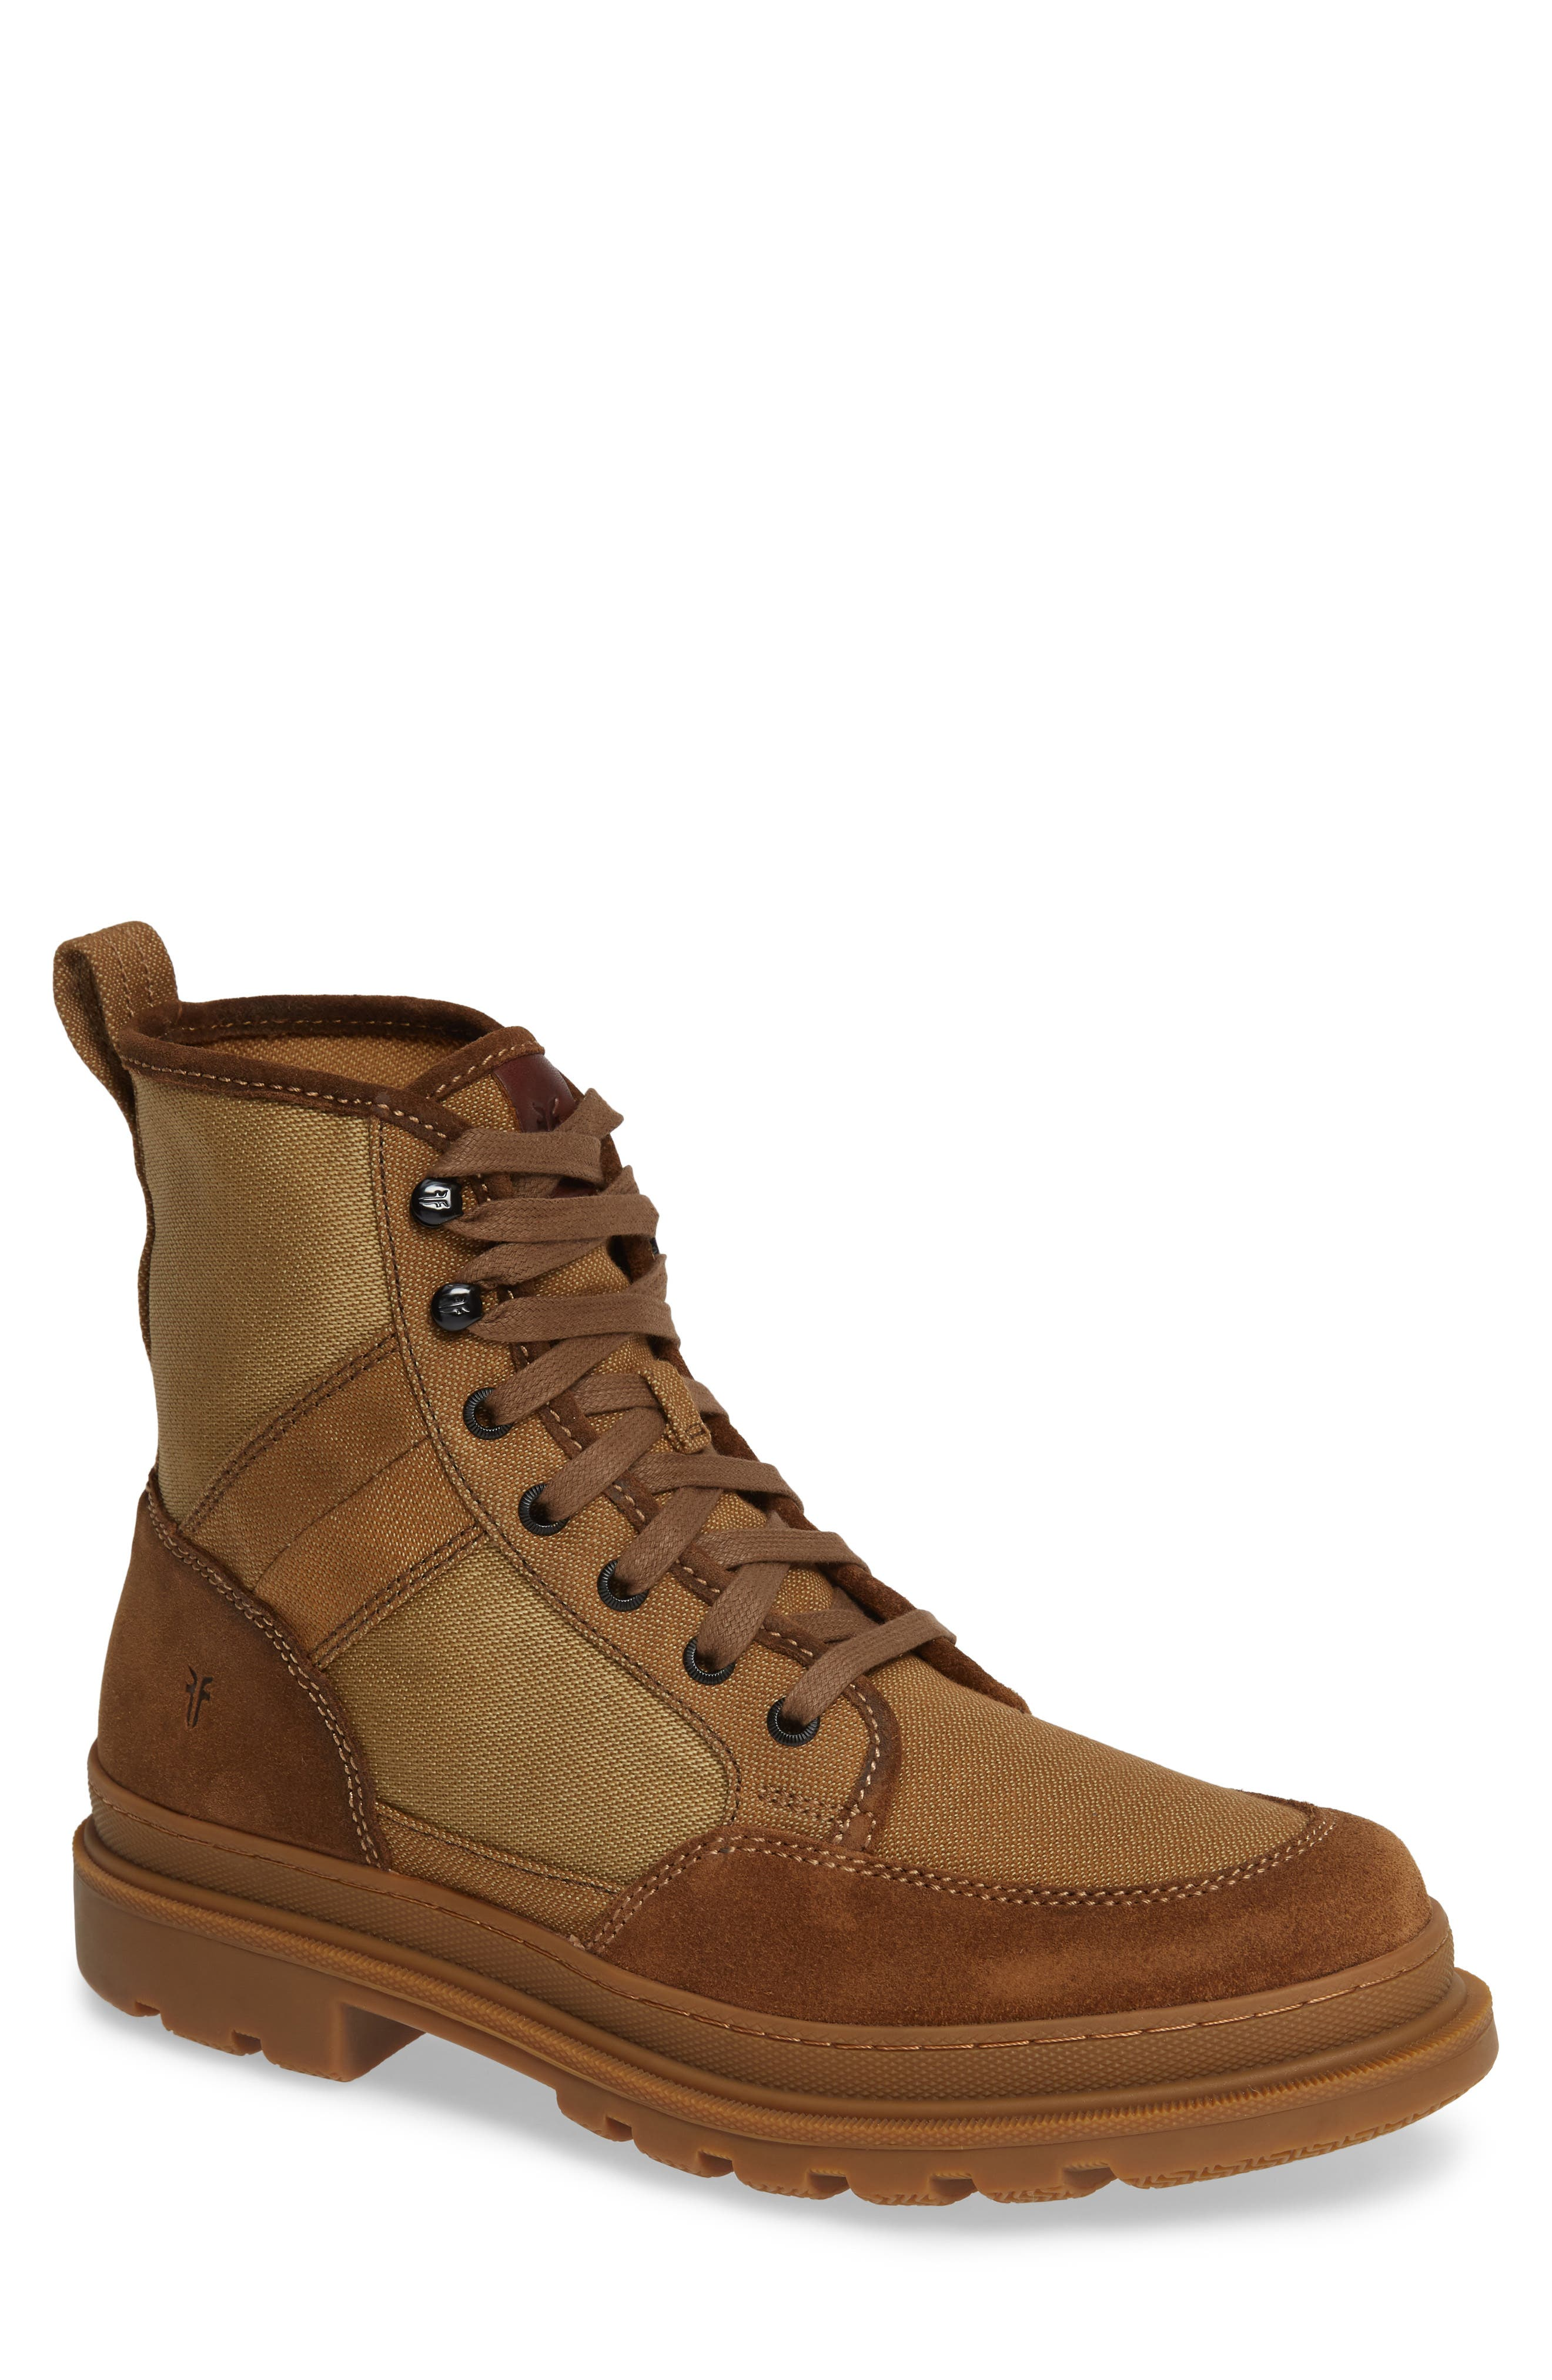 Scout Boot,                         Main,                         color, TAUPE